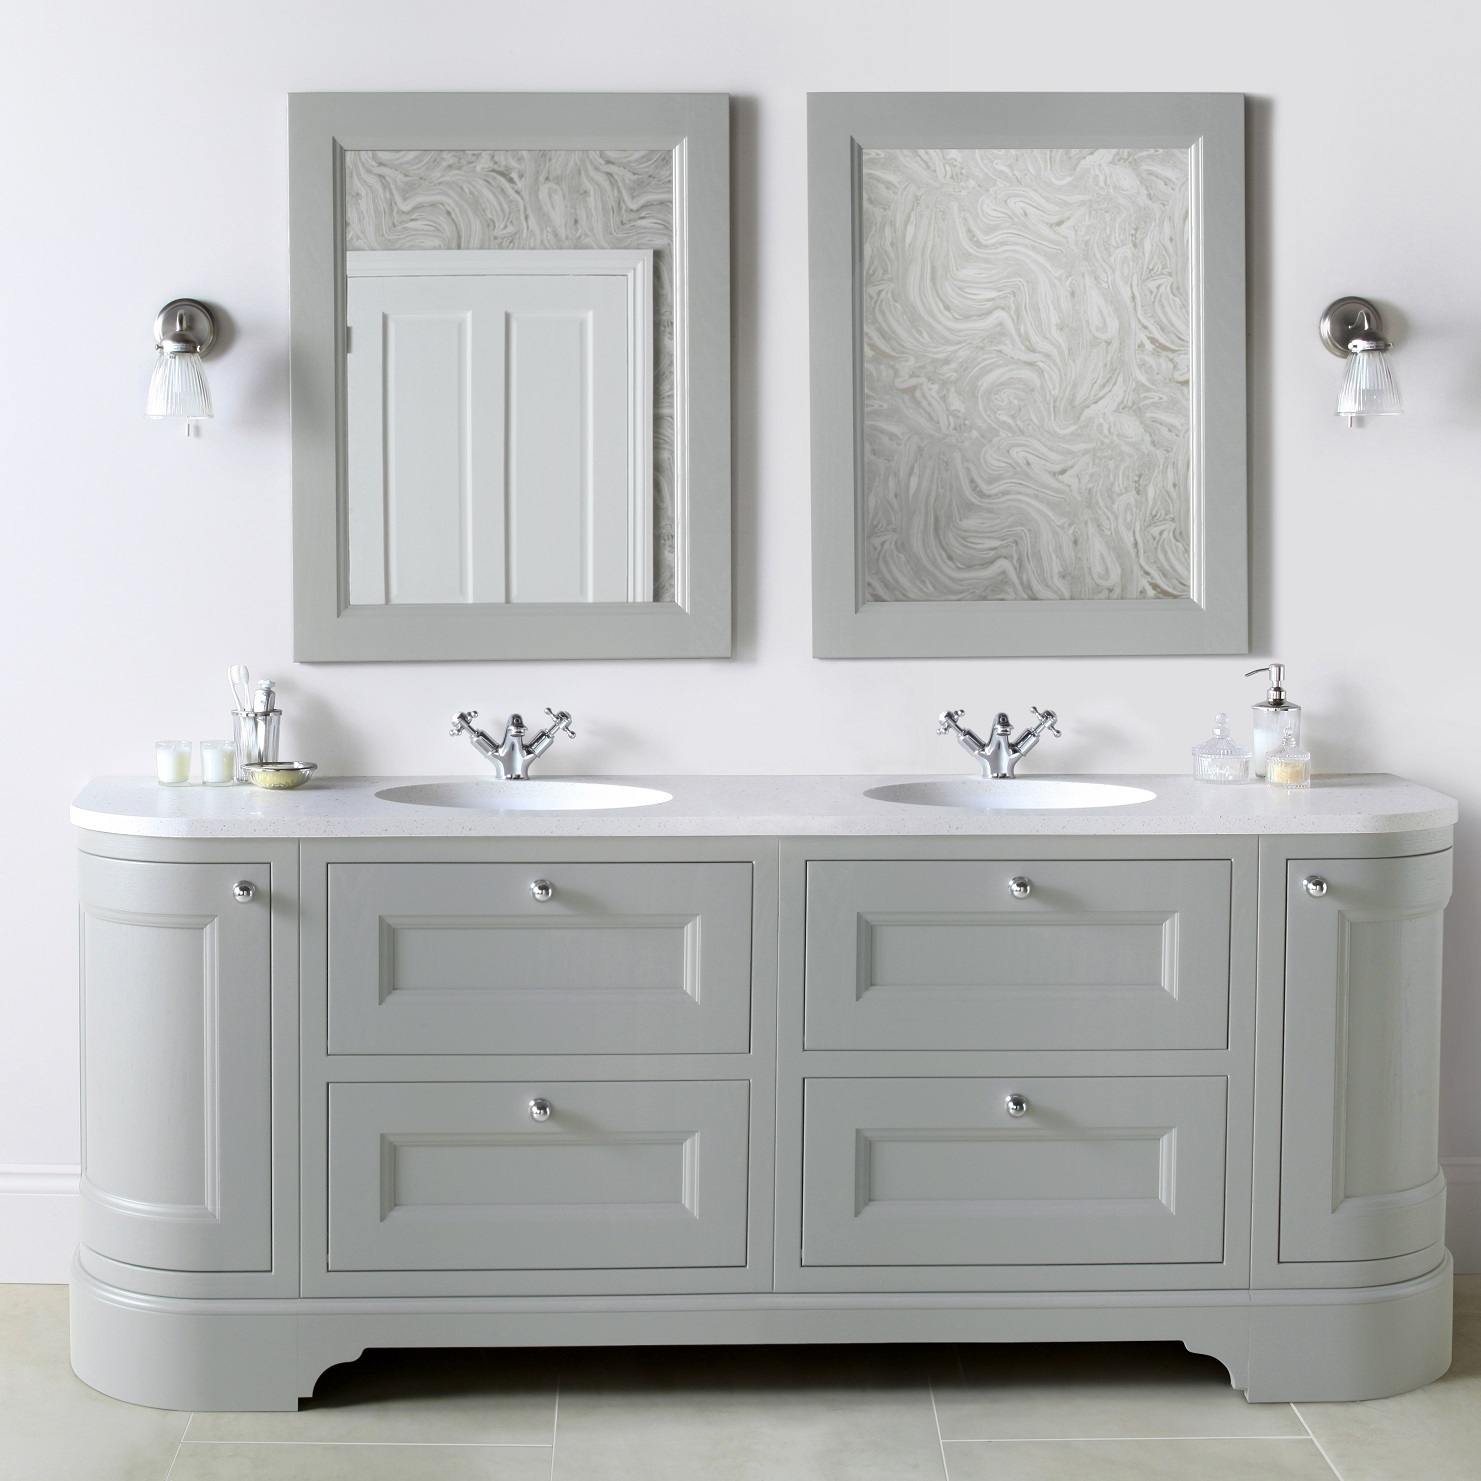 Burbidge Tetbury 2030mm Double Curved Vanity Unit Worktop With Two Integral Basins Bathrooms Direct Yorkshire